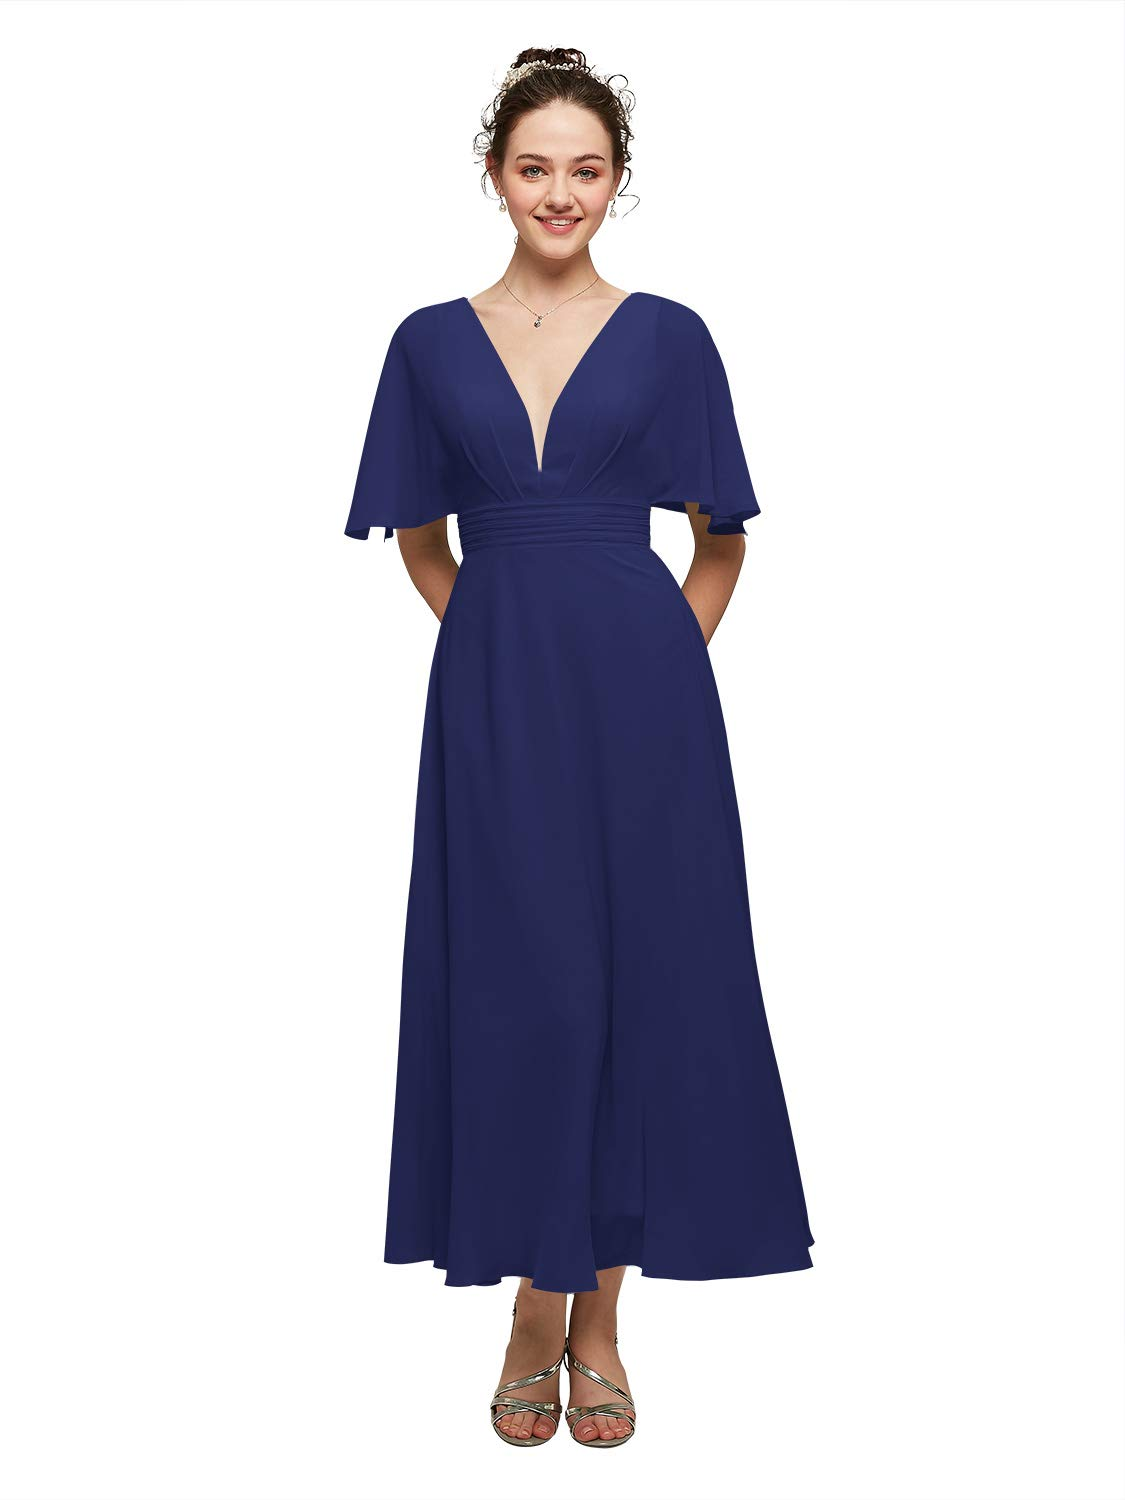 AW BRIDAL Sexy V Neck Bridesmaid Dresses with Sleeves Ankle Length Formal Prom Wedding Guest Dresses for Women